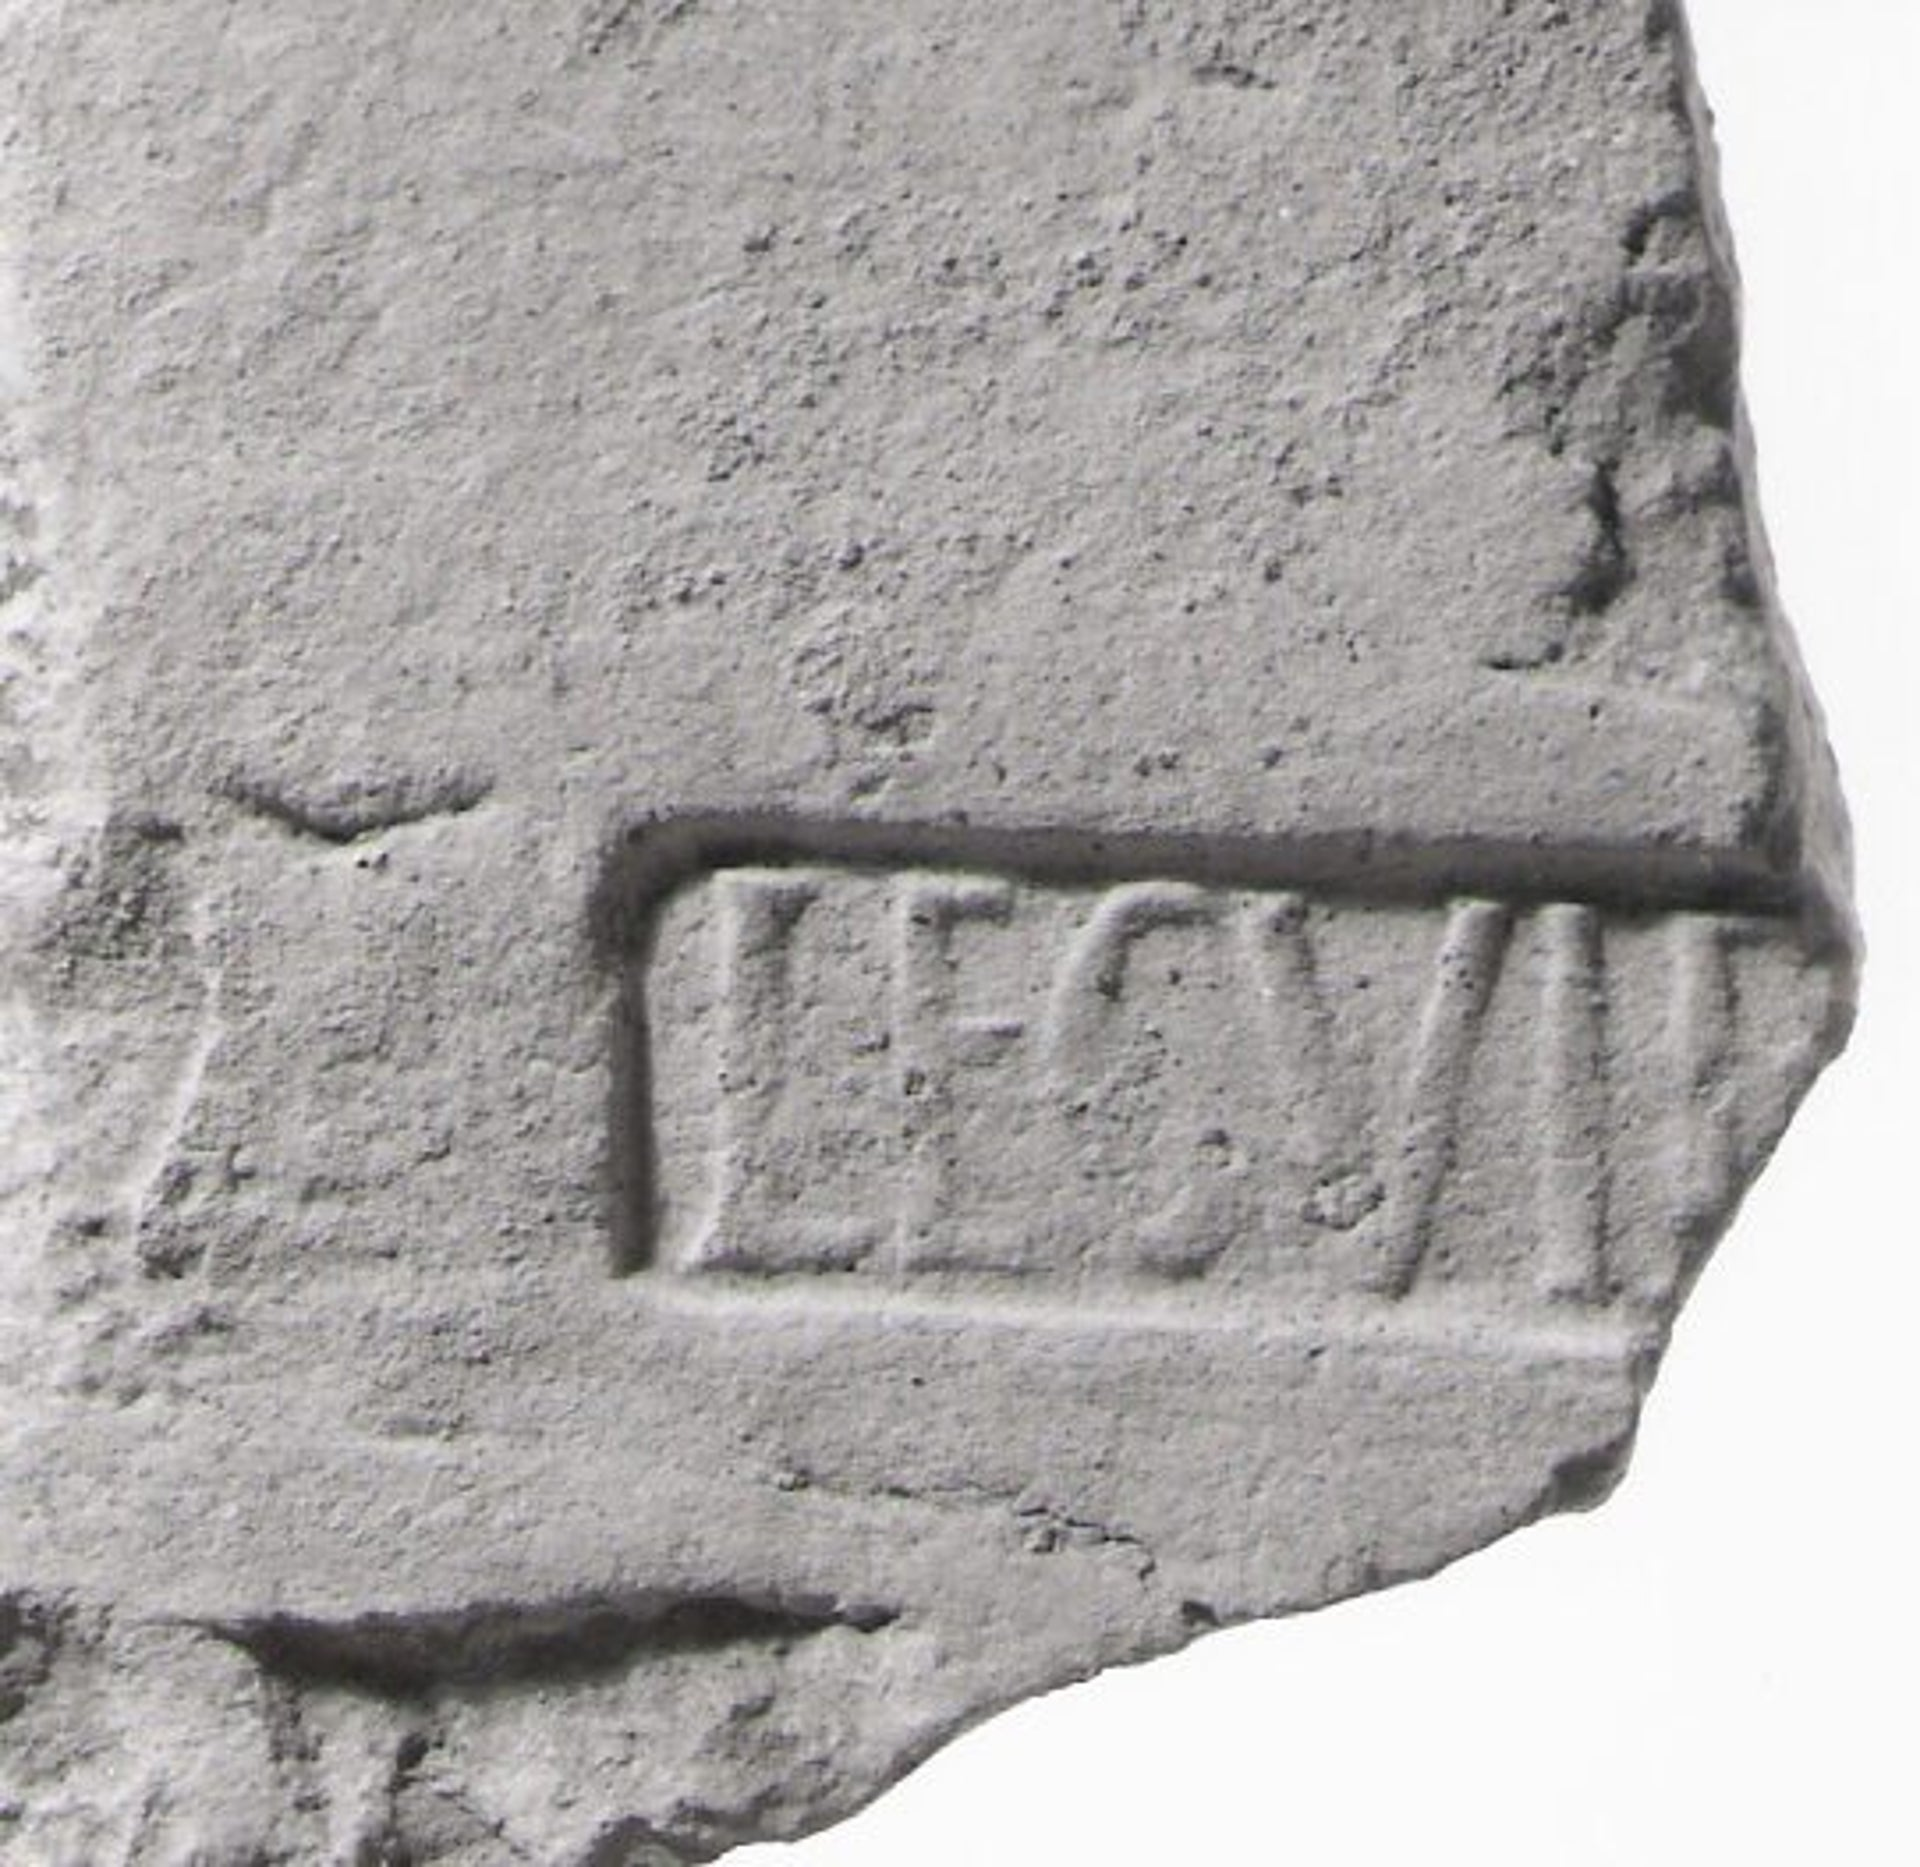 Found at the base of the Legio VI Ferrata, or Sixth Legion Ironclads, Megiddo